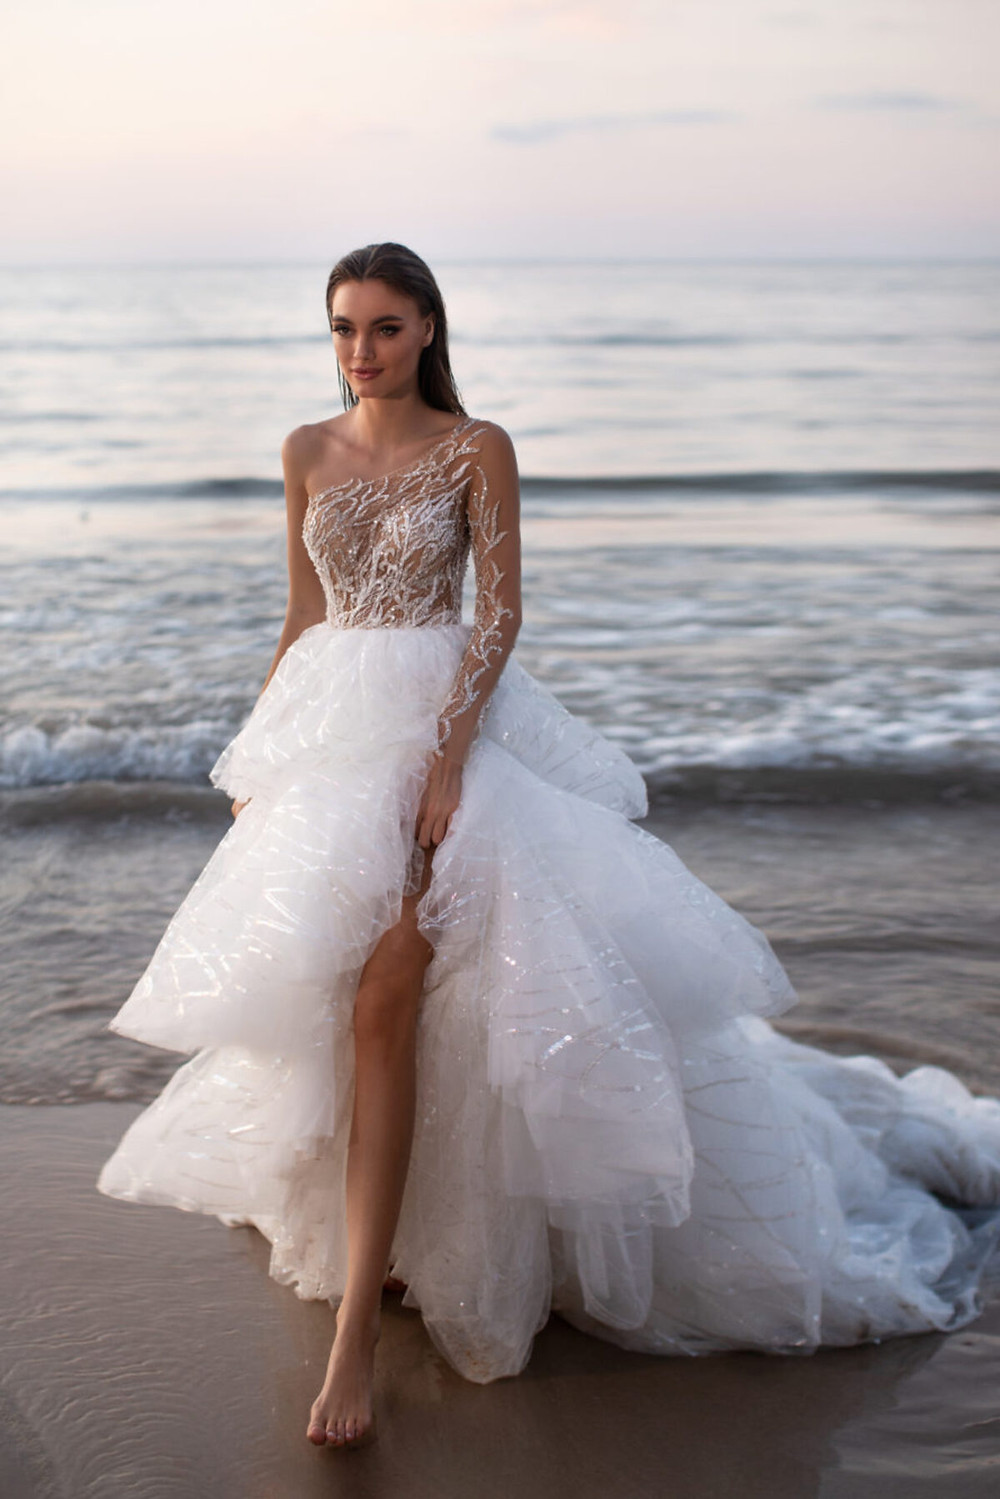 A Milla Nova one shoulder, ball gown wedding dress with a tiered skirt and sparkles